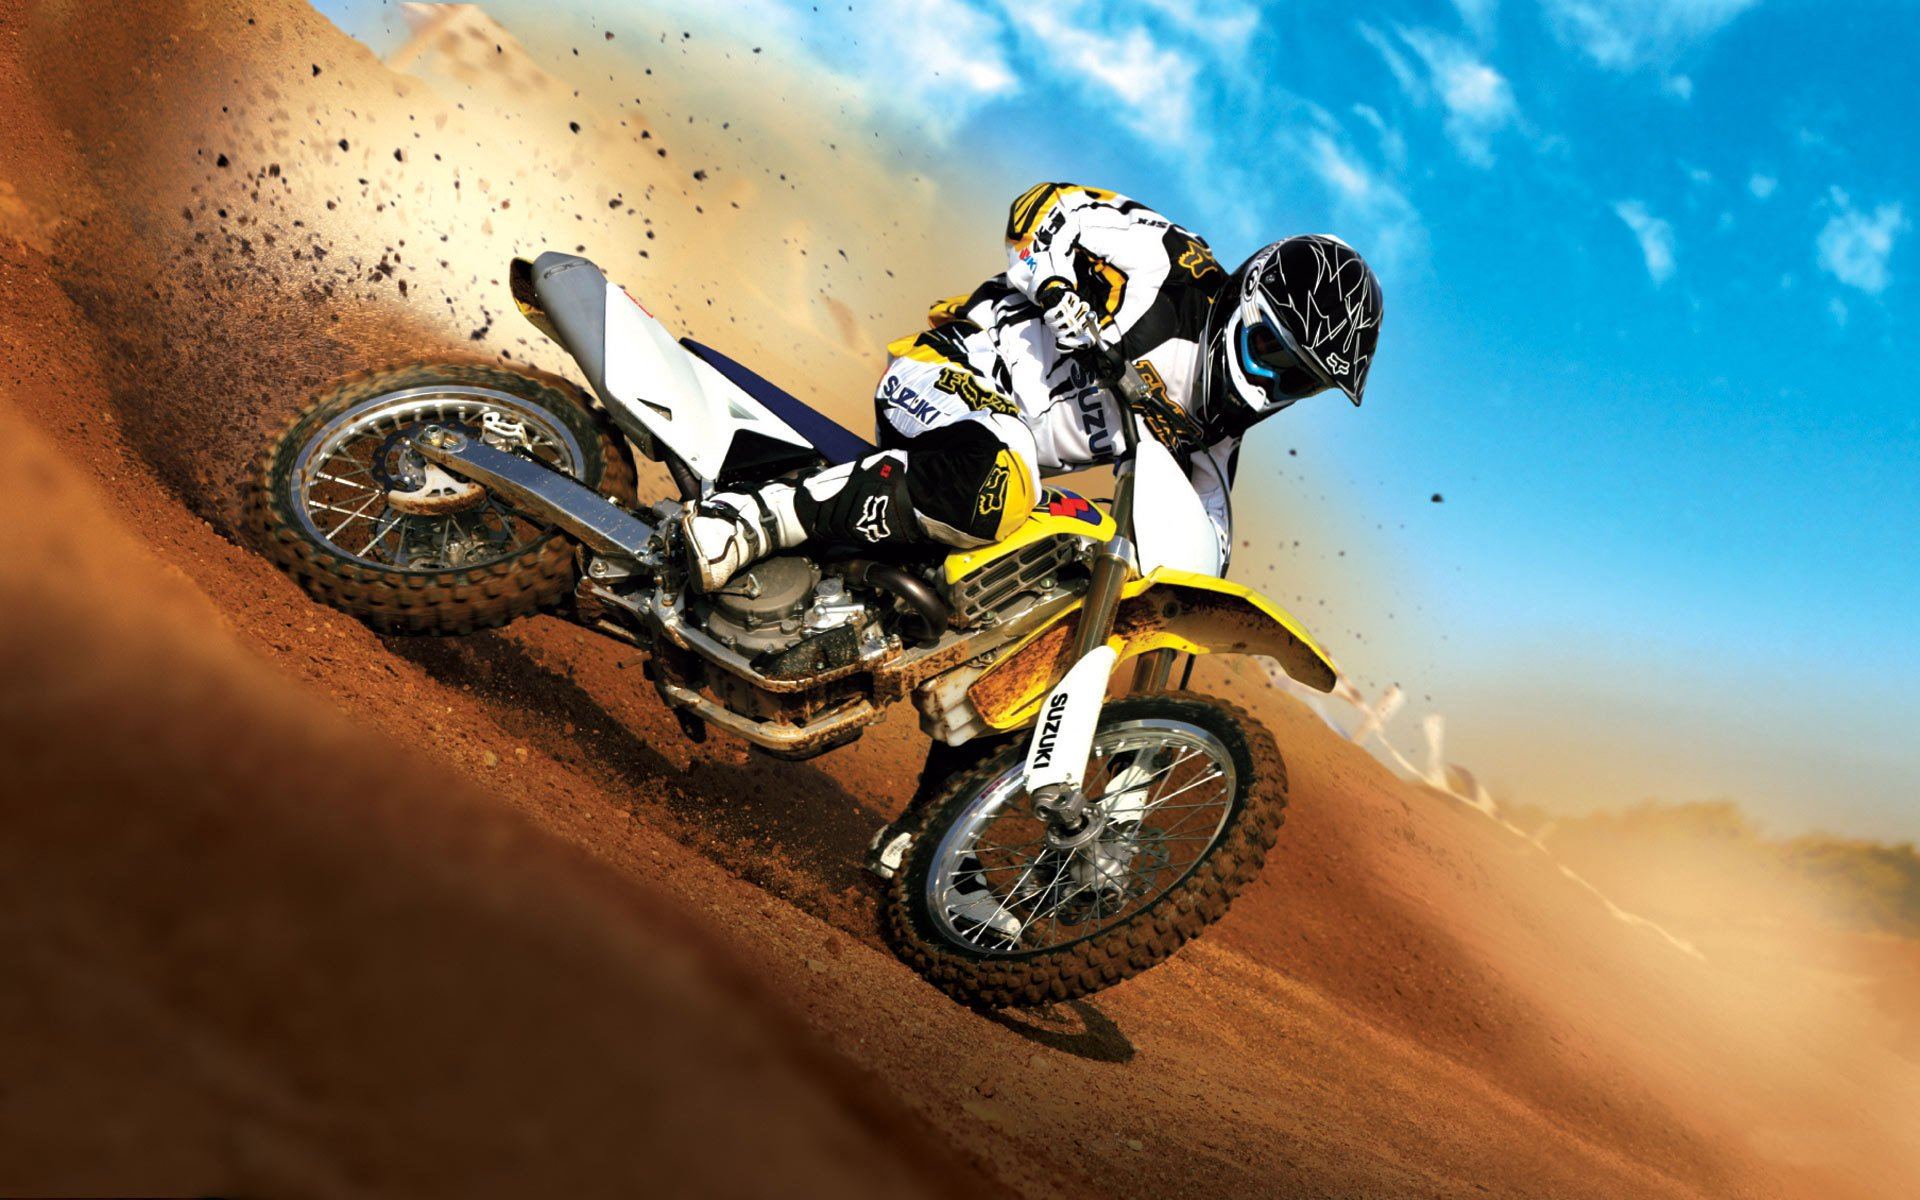 Wallpapers Motocross [Hd]   Taringa 1920x1200